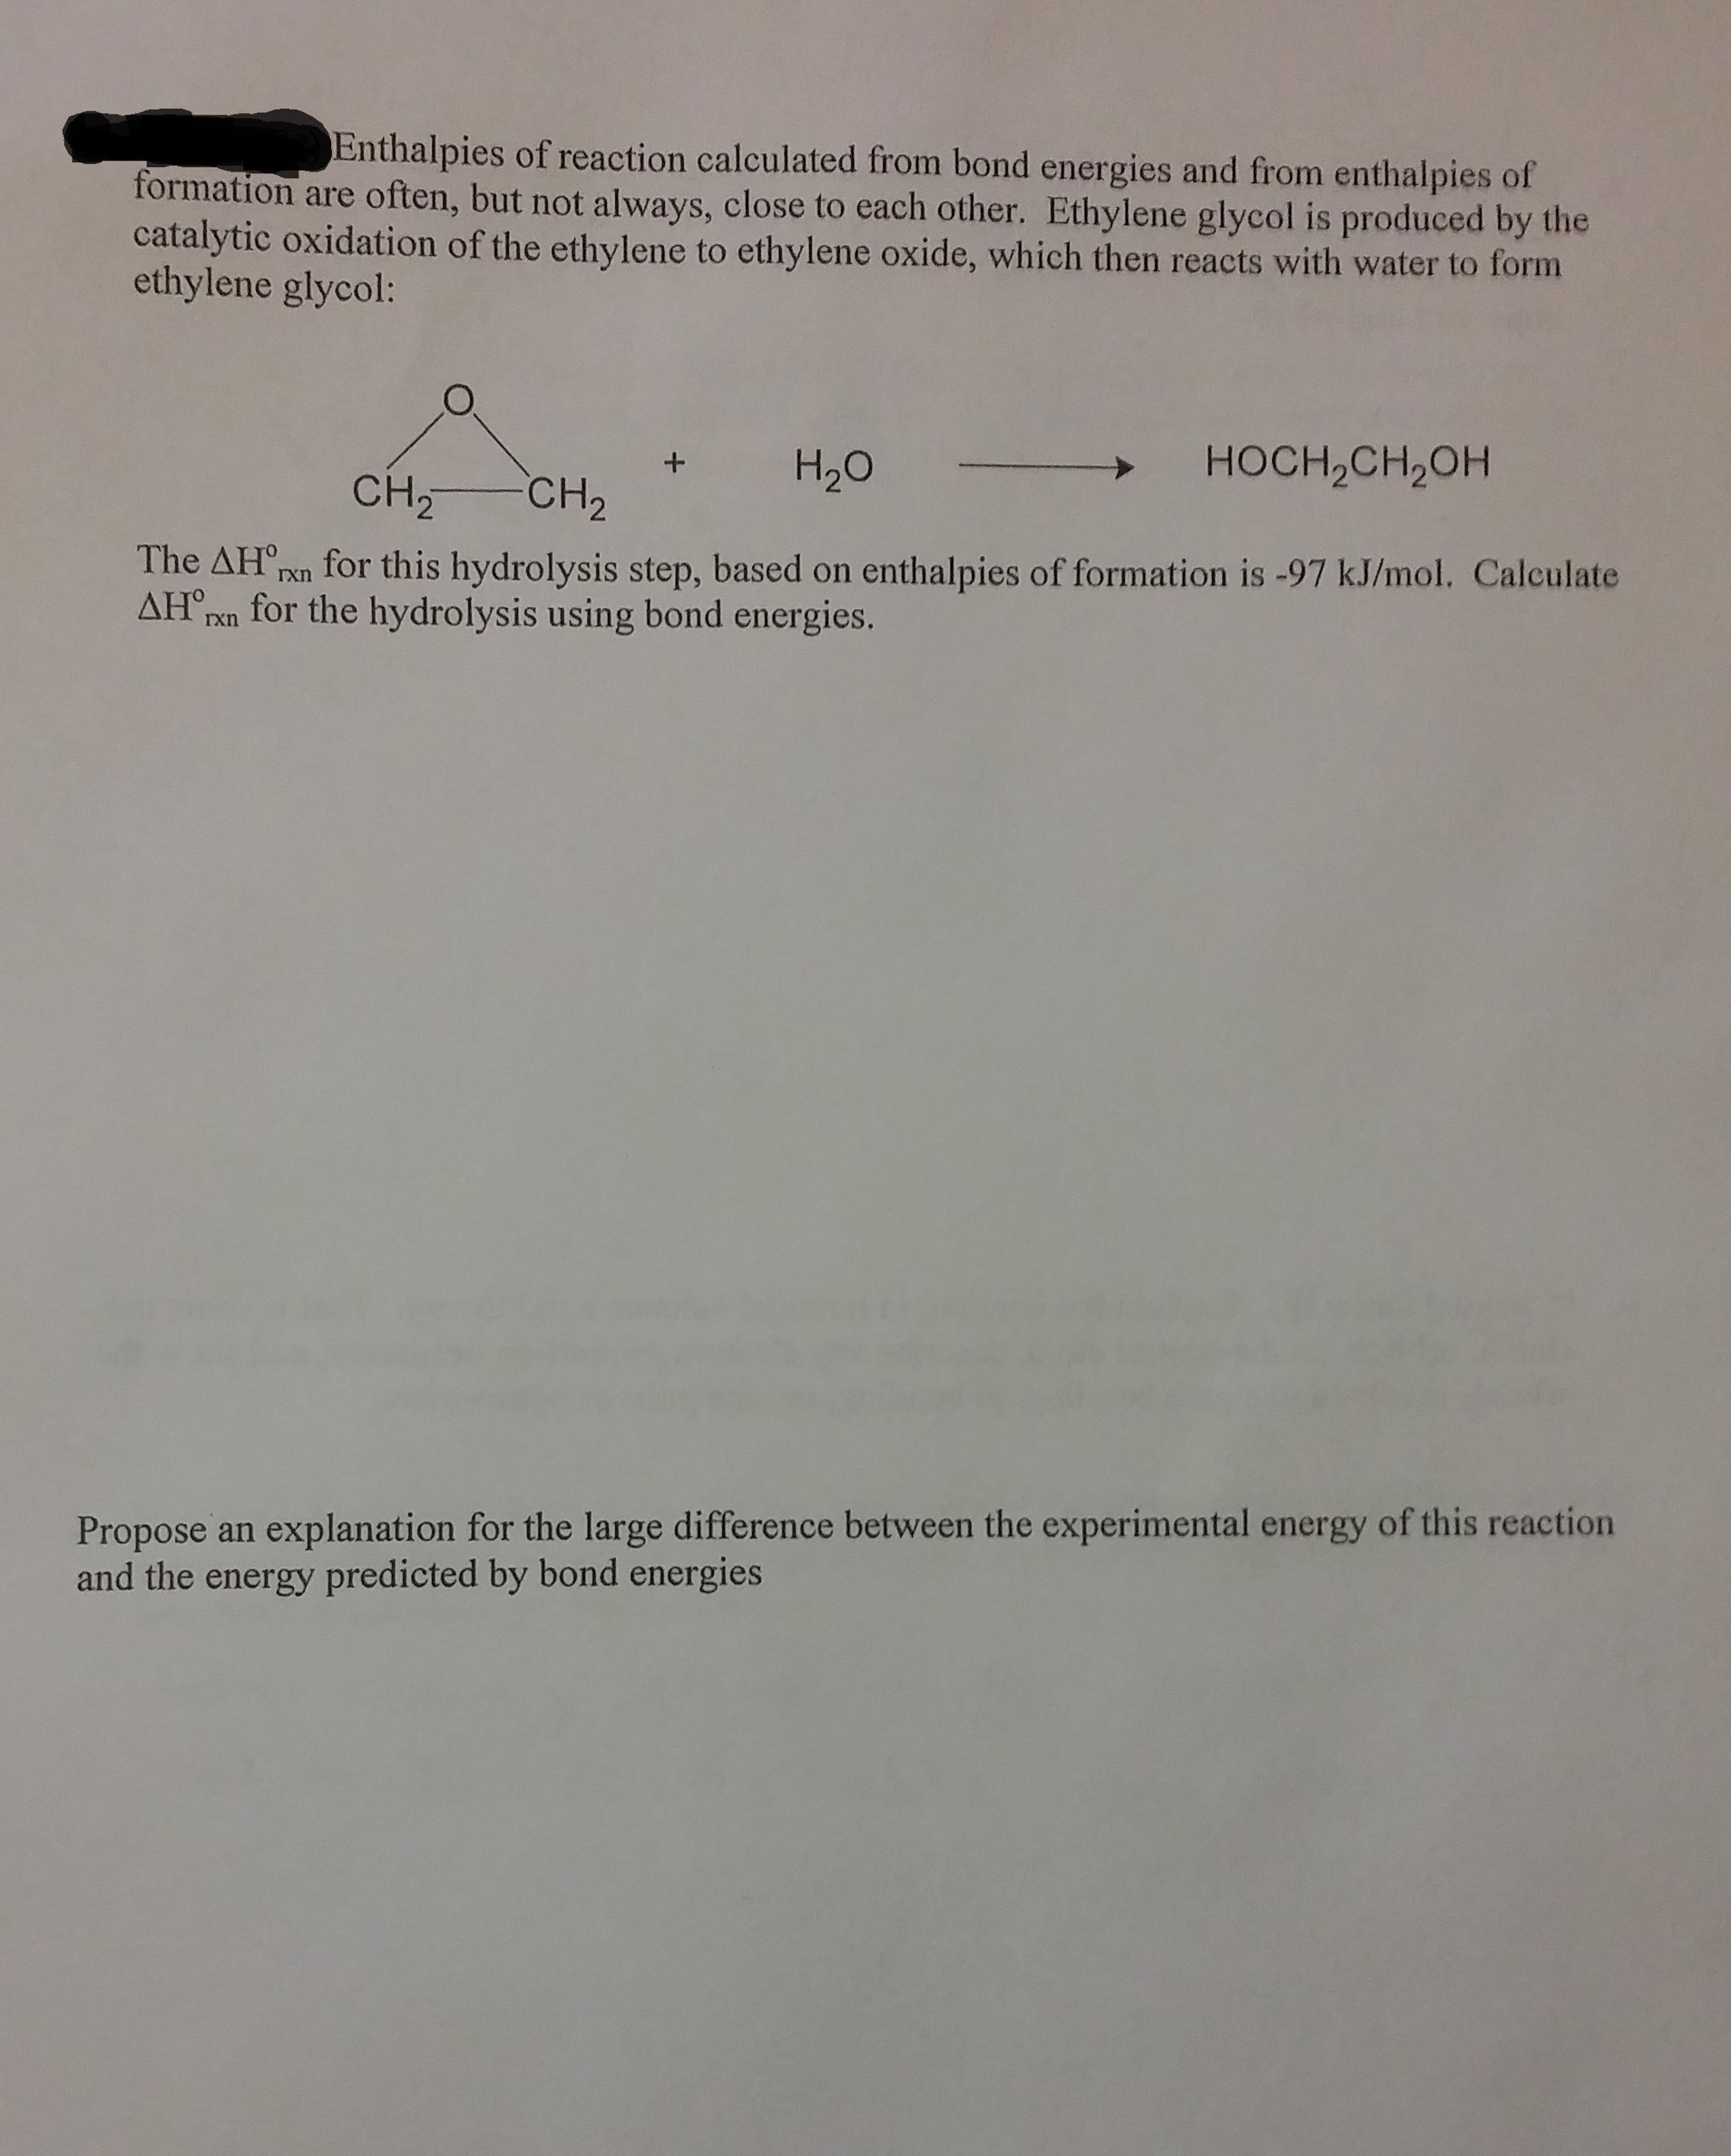 chemistry homework help and answers essay on rabbit proof fence skip to you might get help for if you are having trouble accessing your online student edition because the access code is wrong please ask your